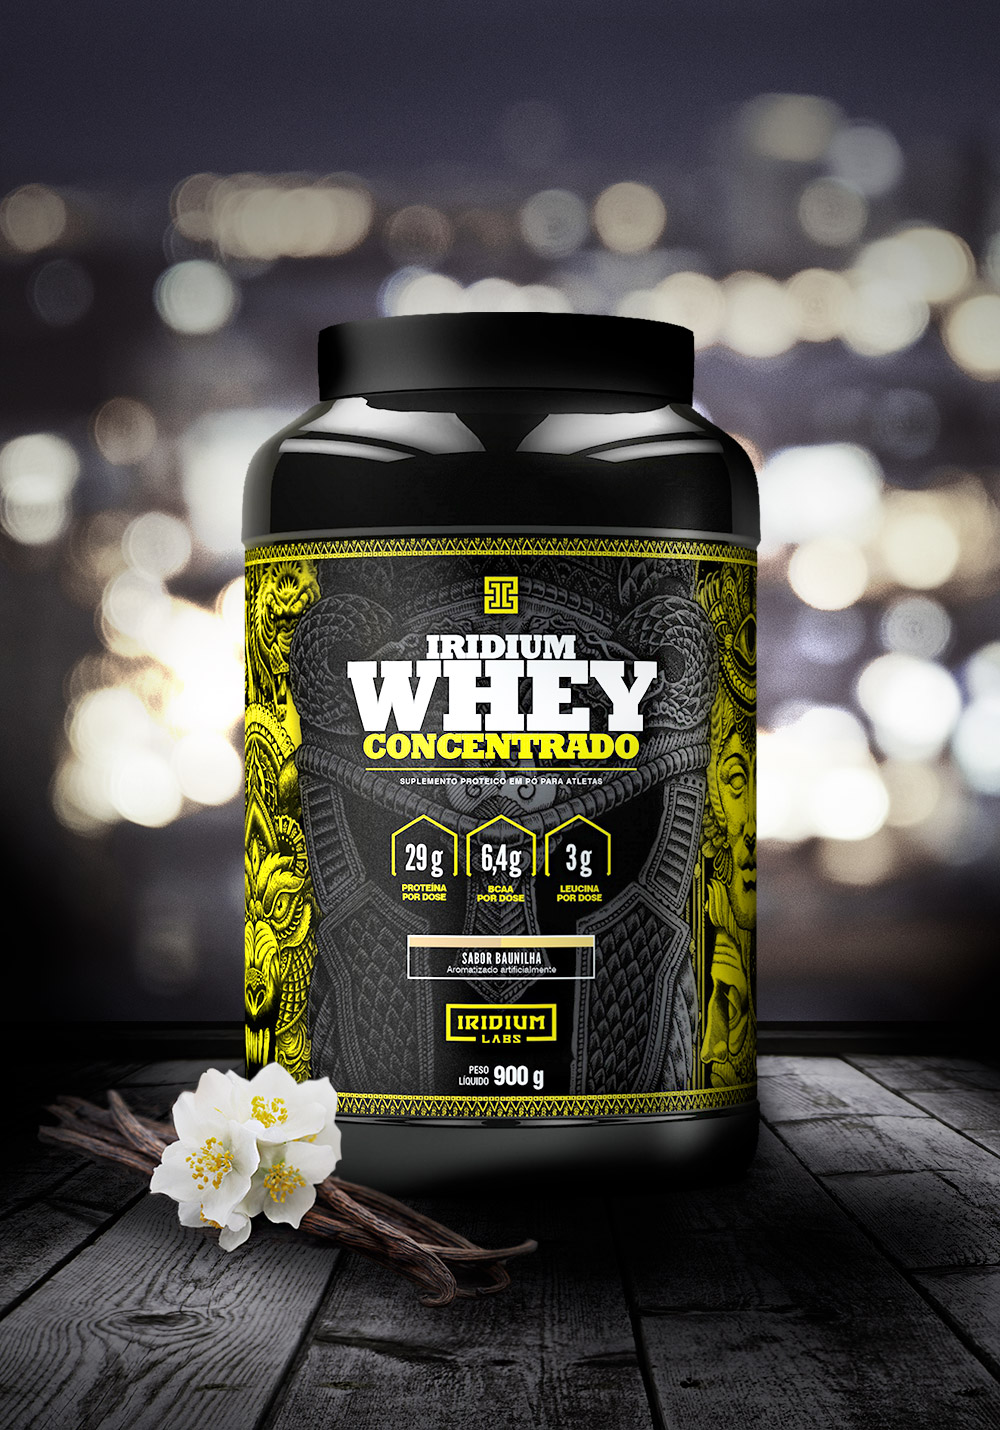 Iridium Whey Concentrado